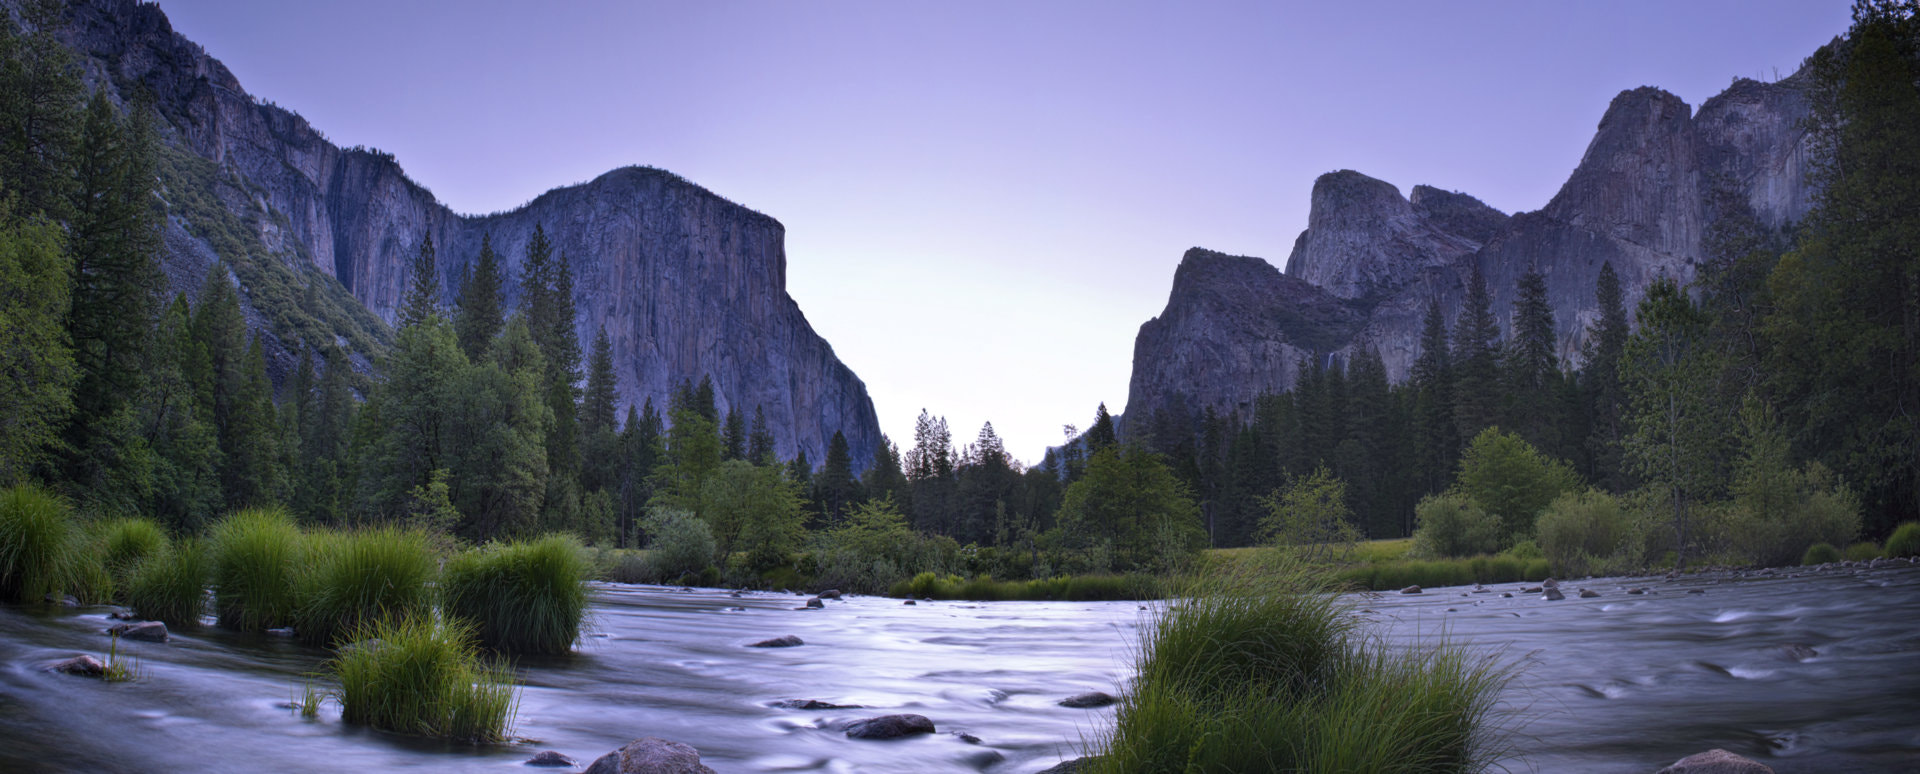 Photograph Yosemite Valley by Lee Parks on 500px